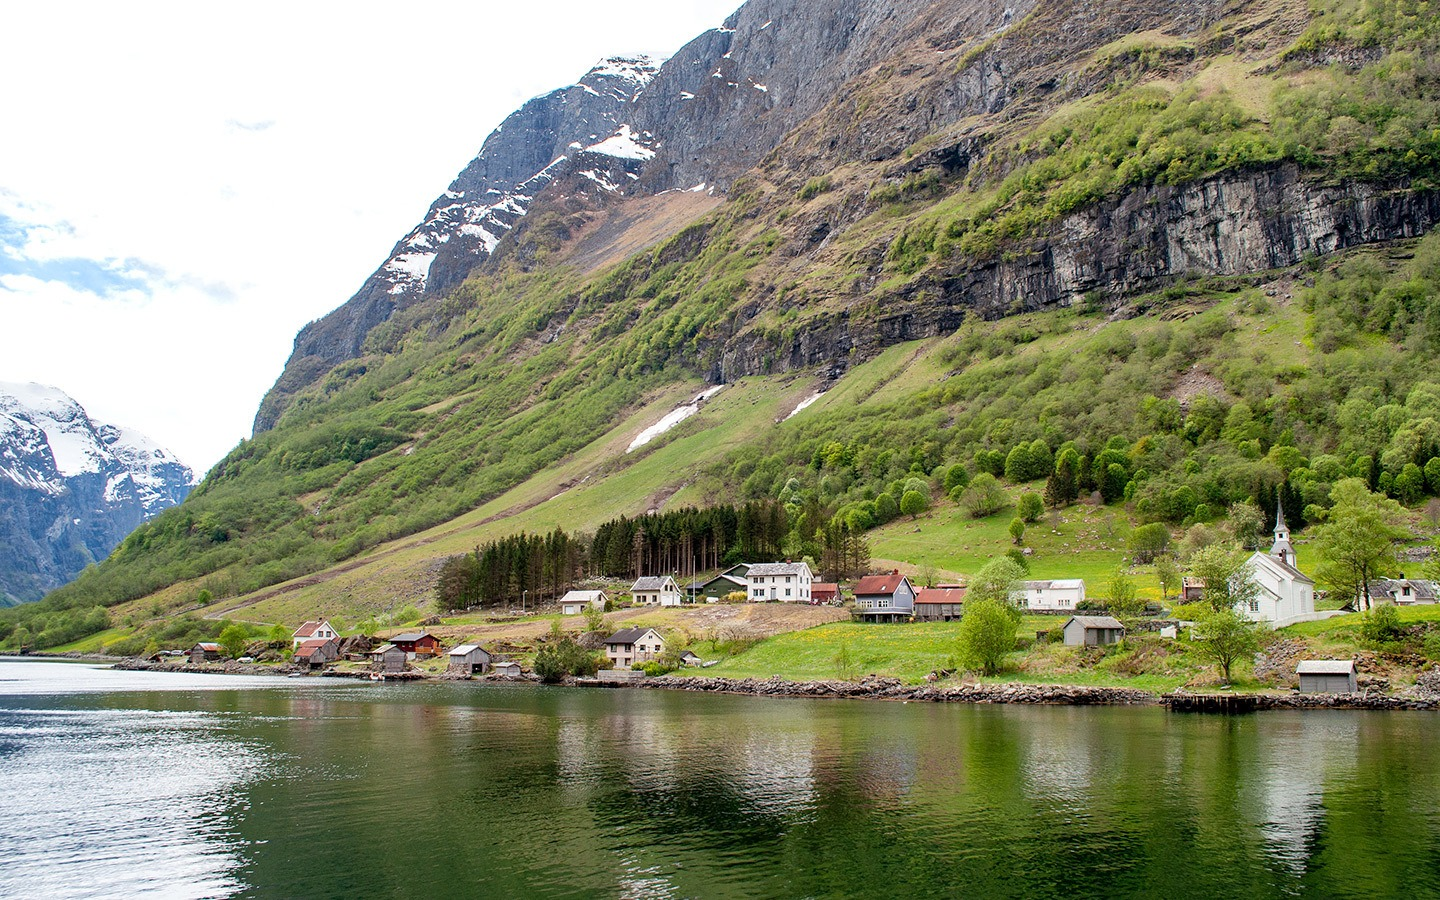 Bakka in the Norwegian fjords